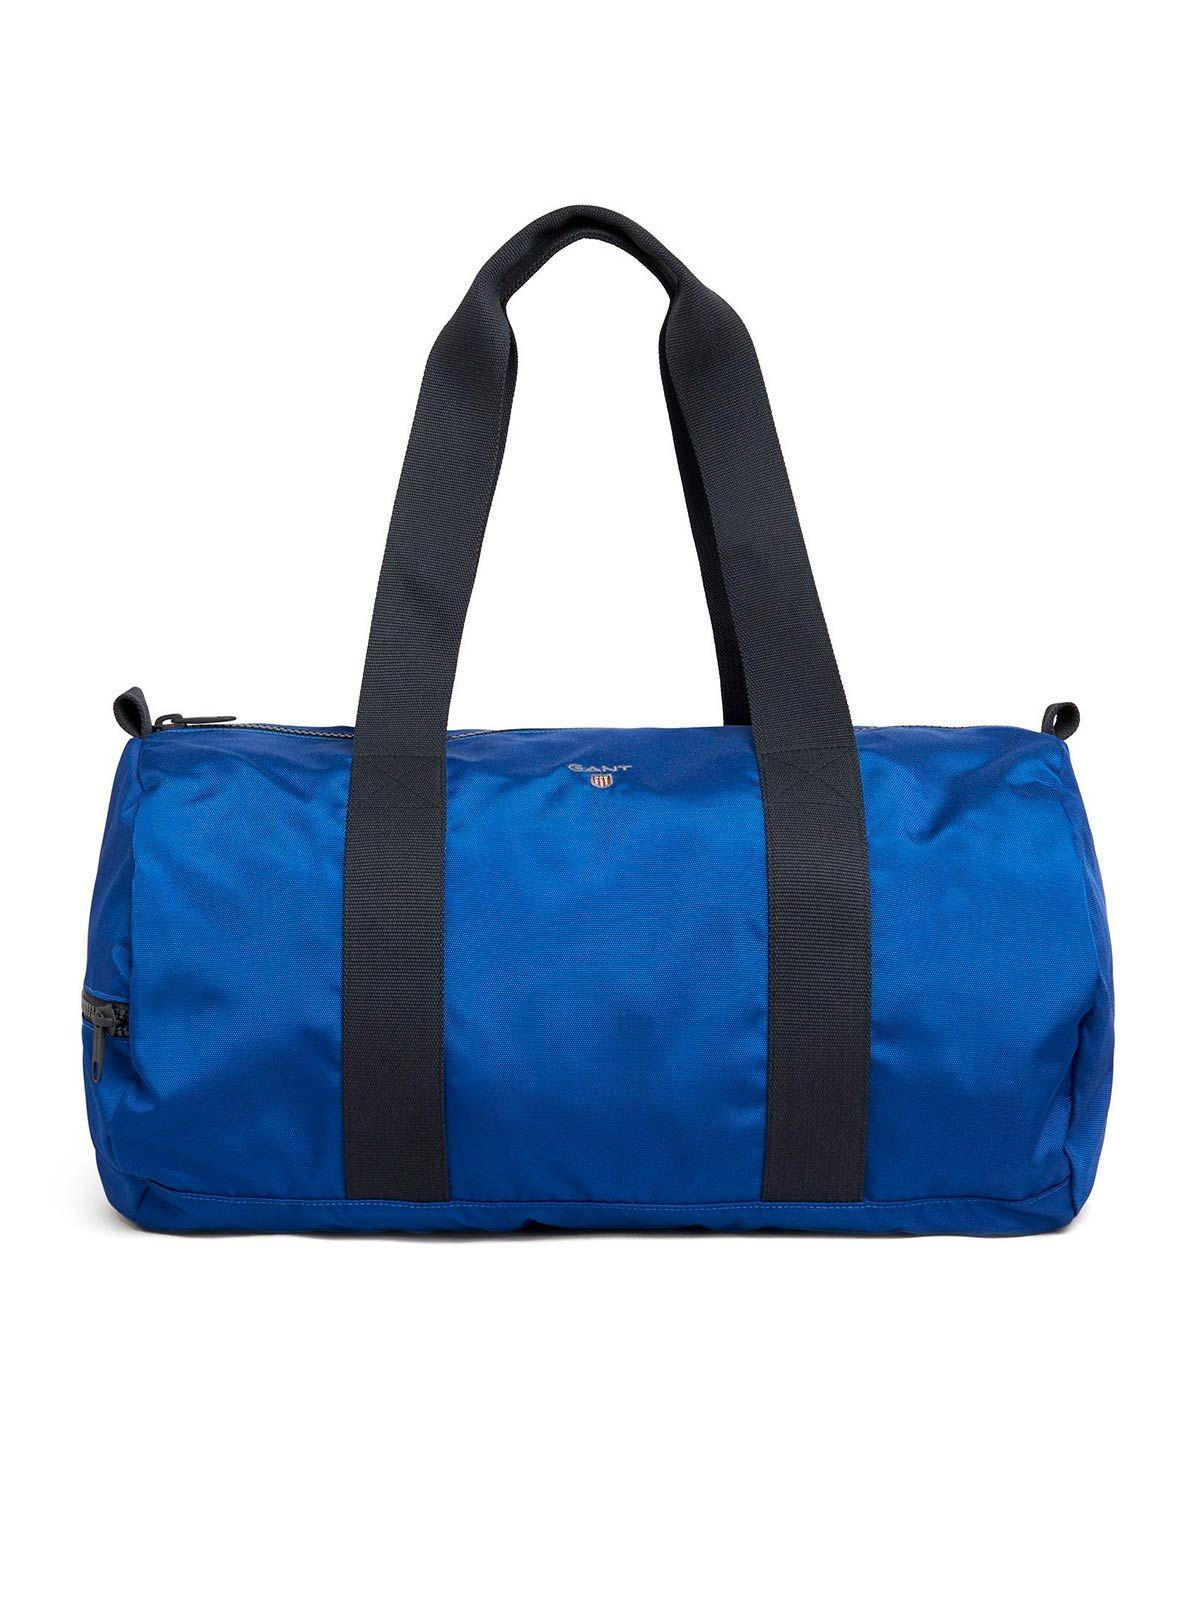 16690d056 Gant - Blue Polyester Travel Bag for Men - Lyst. View fullscreen